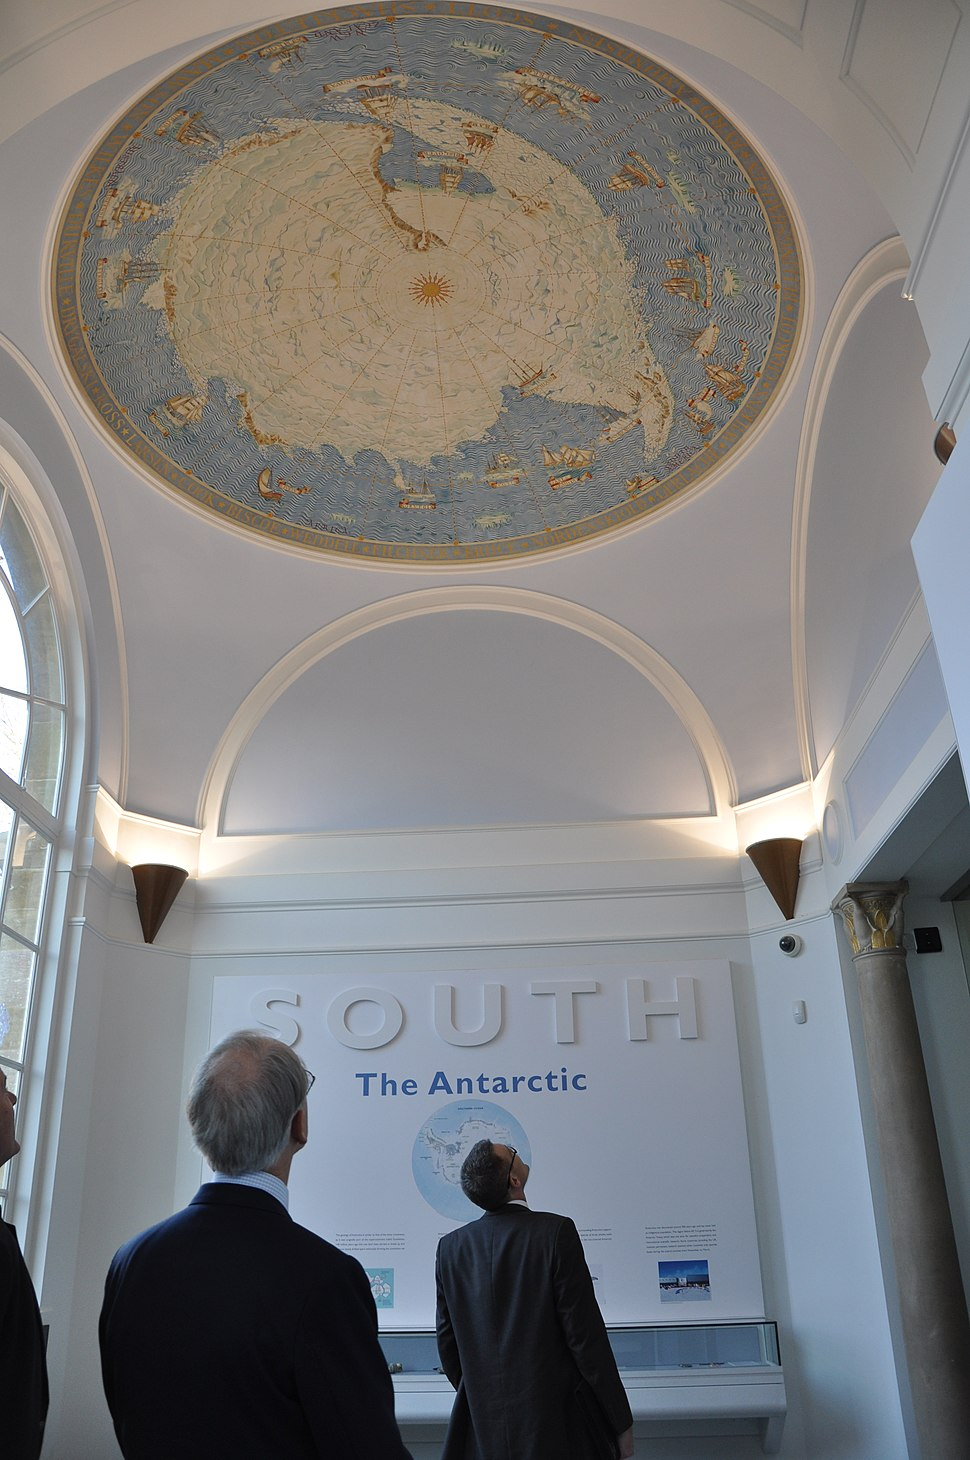 Memorial Hall in the Polar Museum, Scott Polar Research Institute